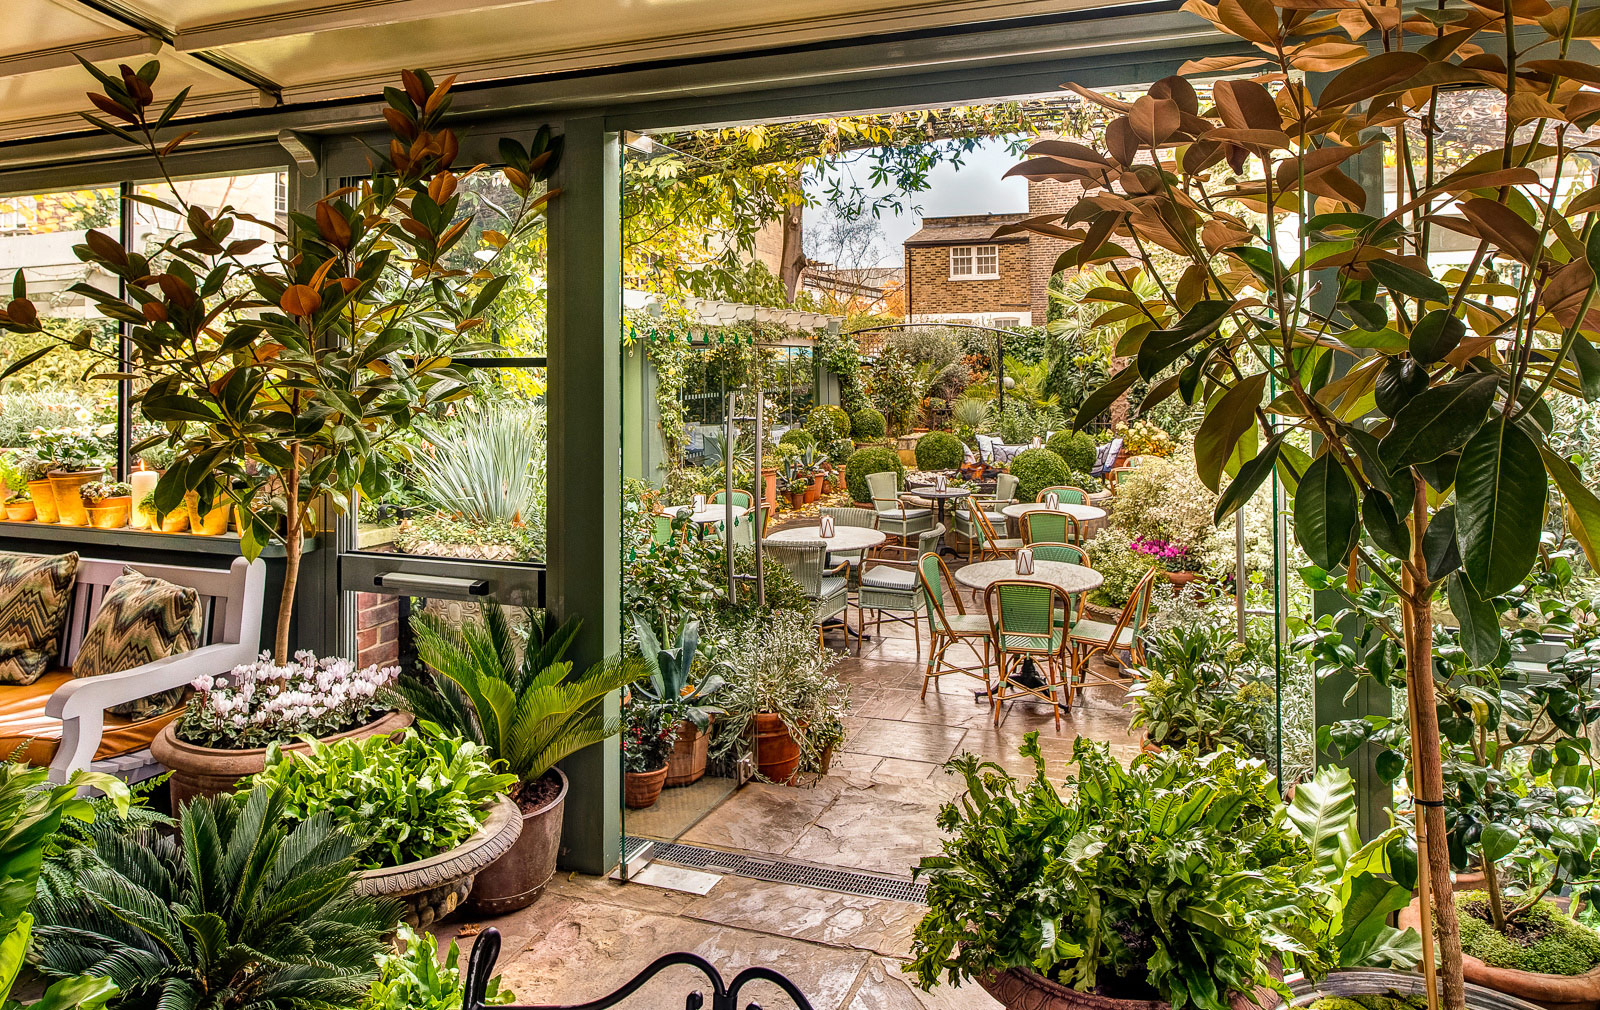 London restaurants with gardens – Ivy Chelsea Garden